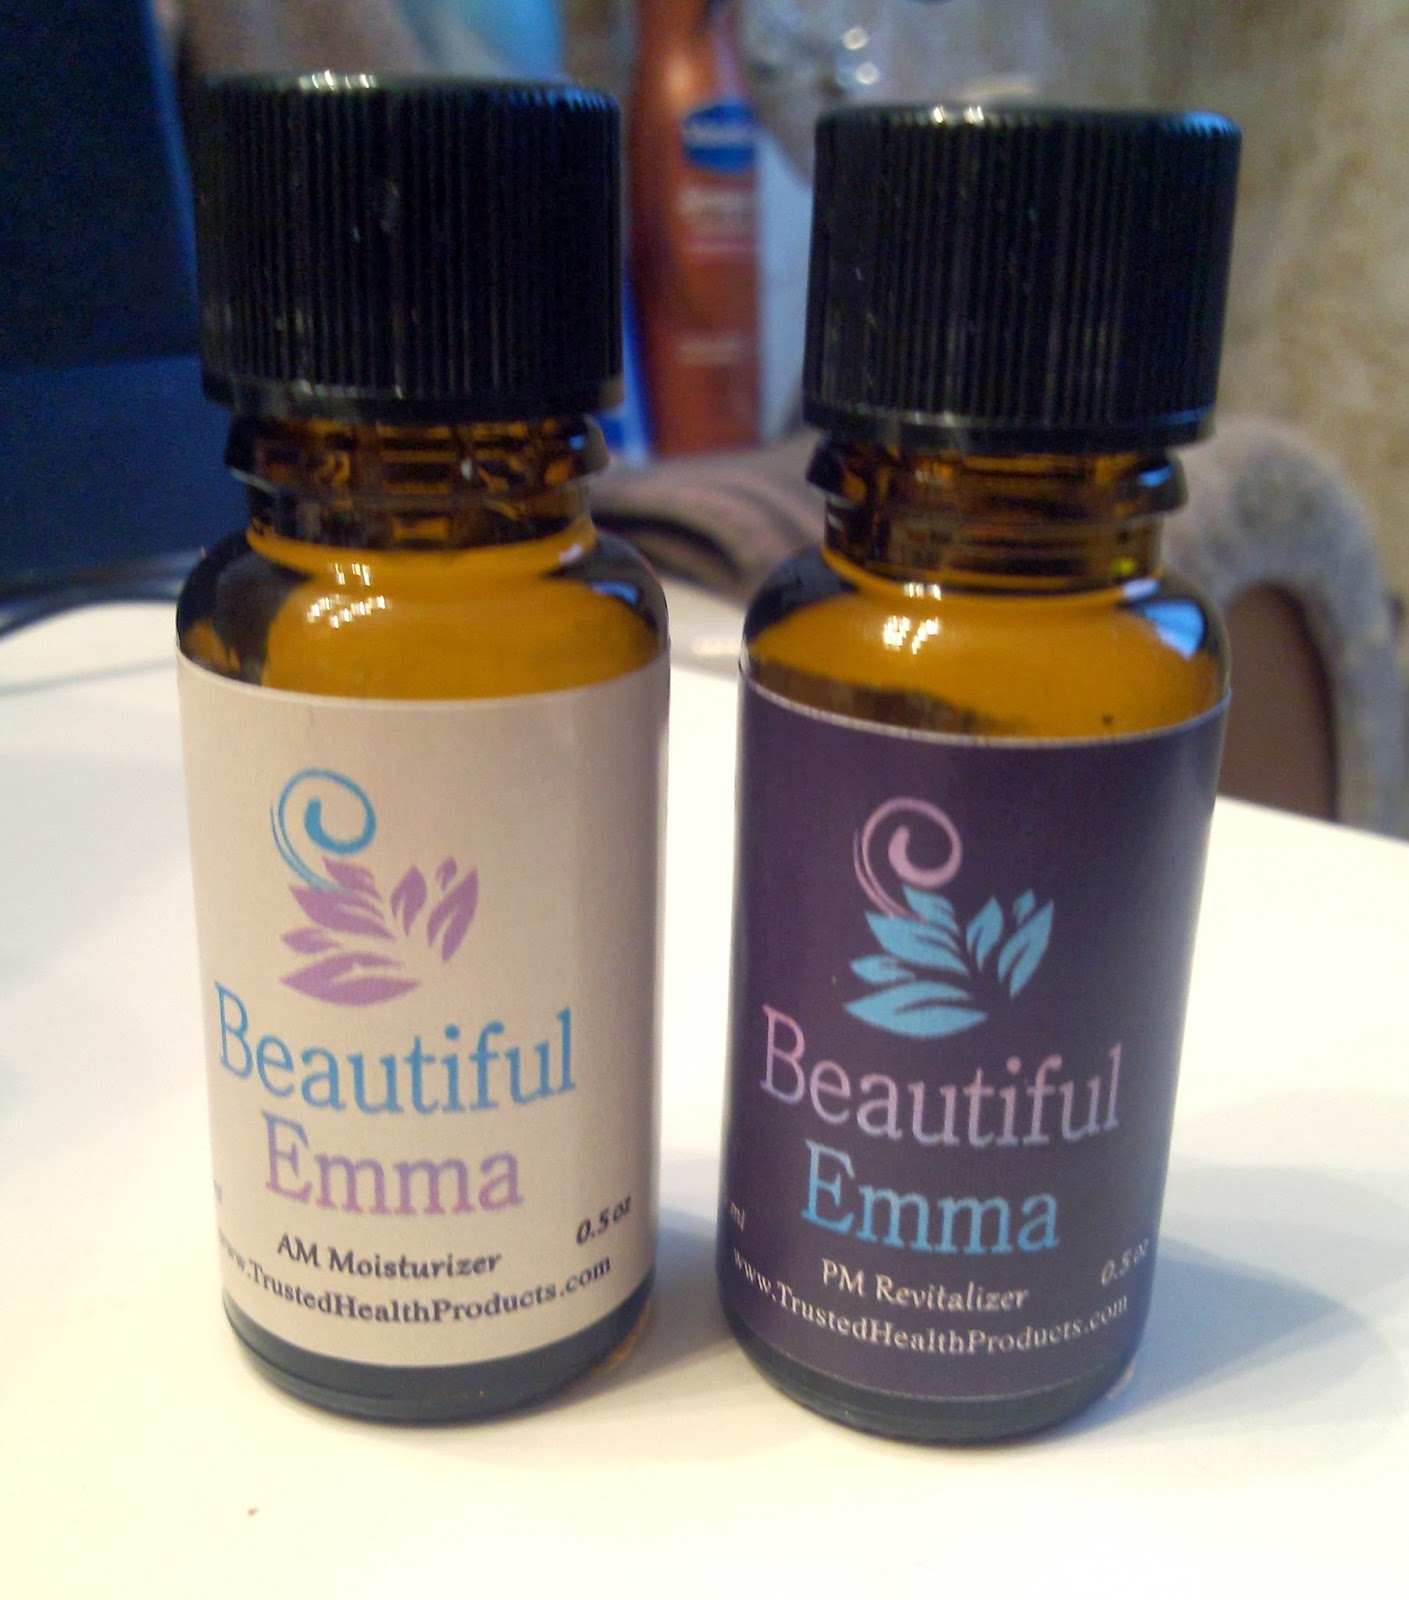 Beautiful Emma Skincare Review - by Trusted Health Products